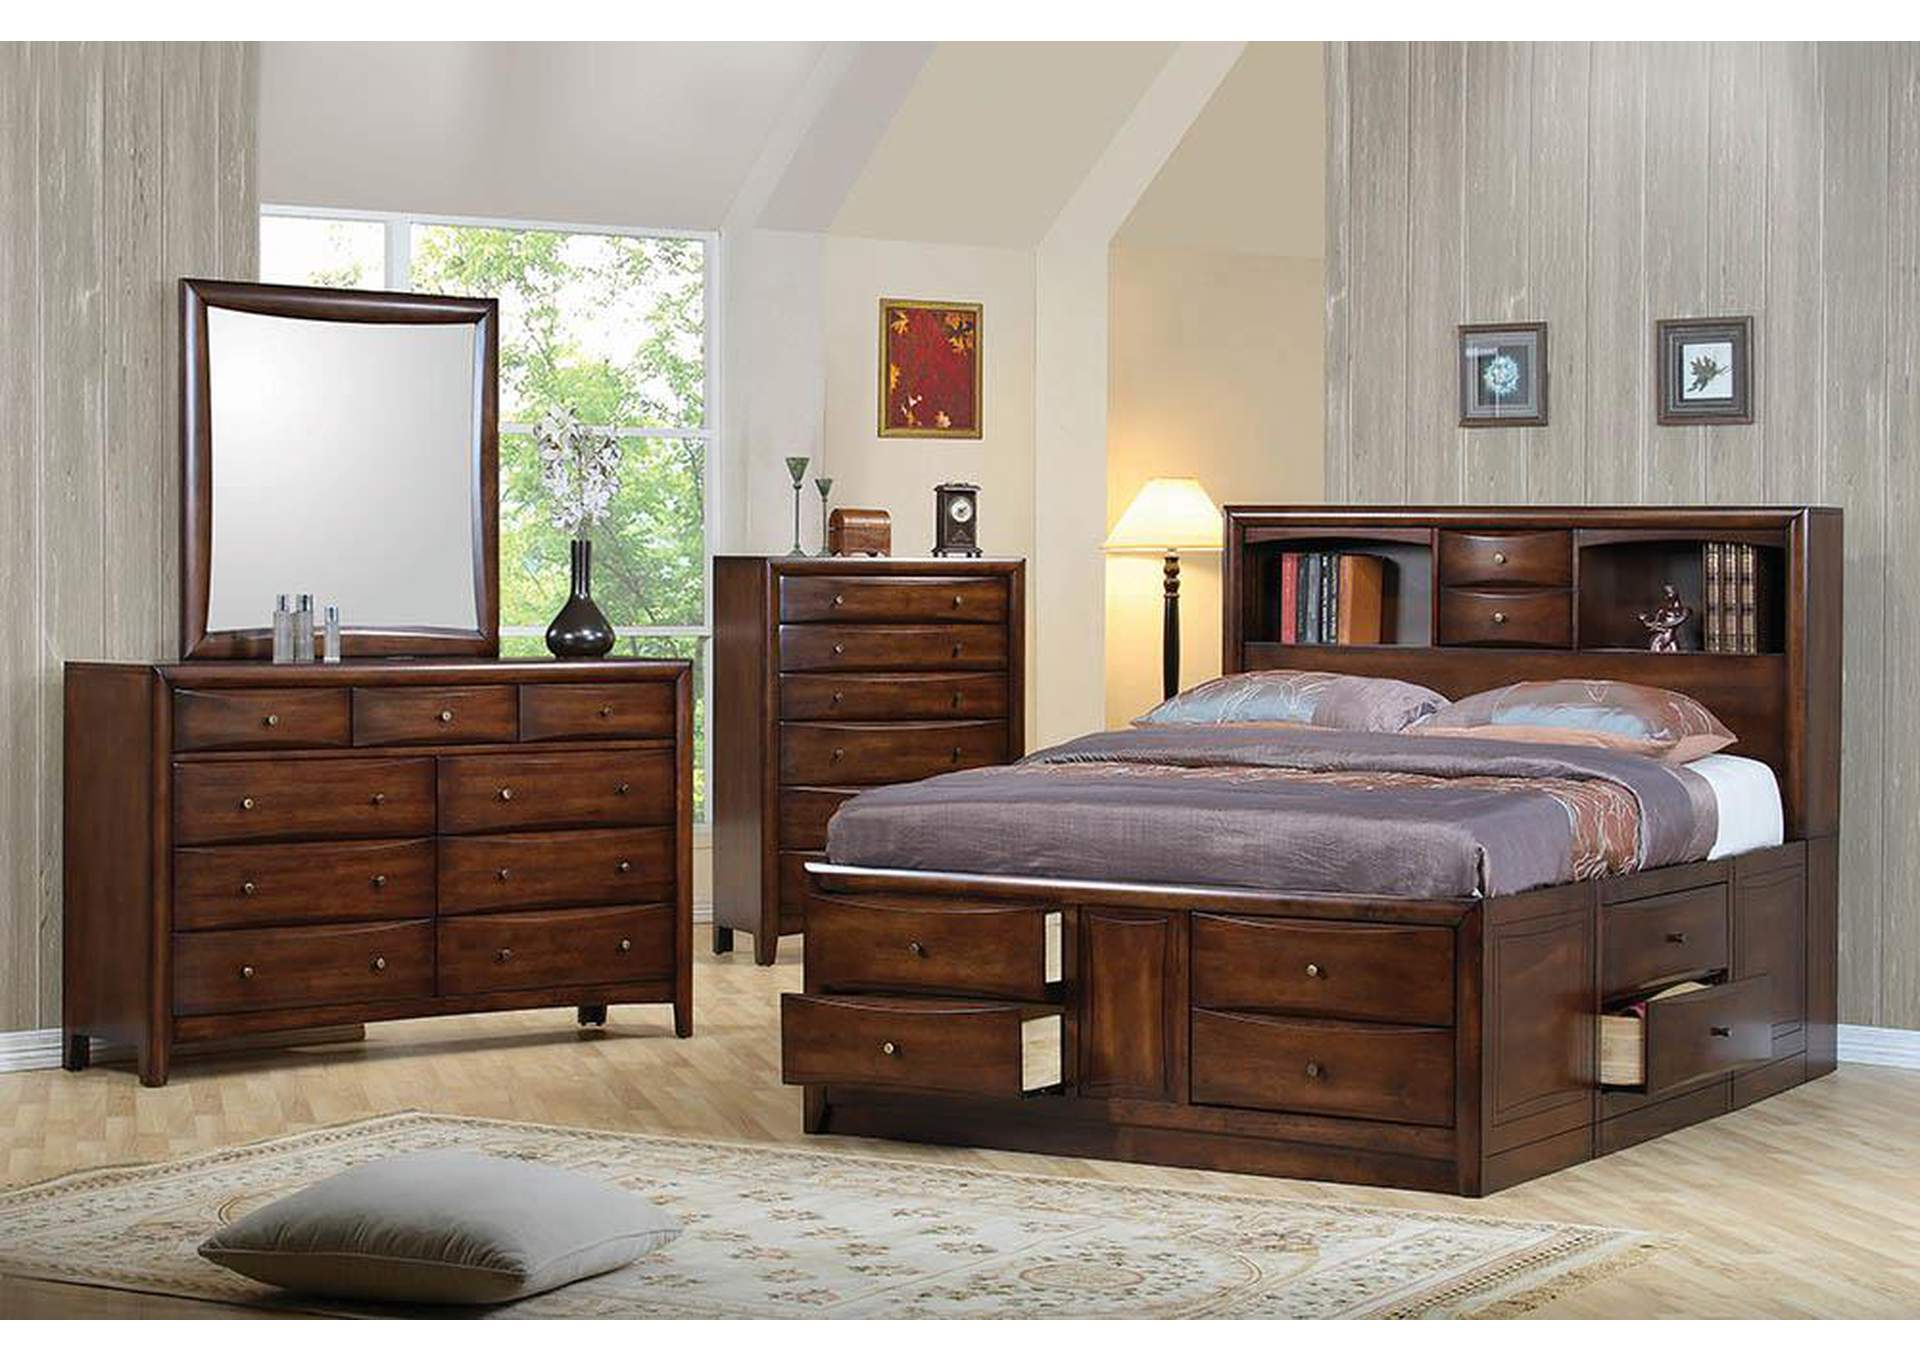 Hillary Walnut California King Bed,Coaster Furniture